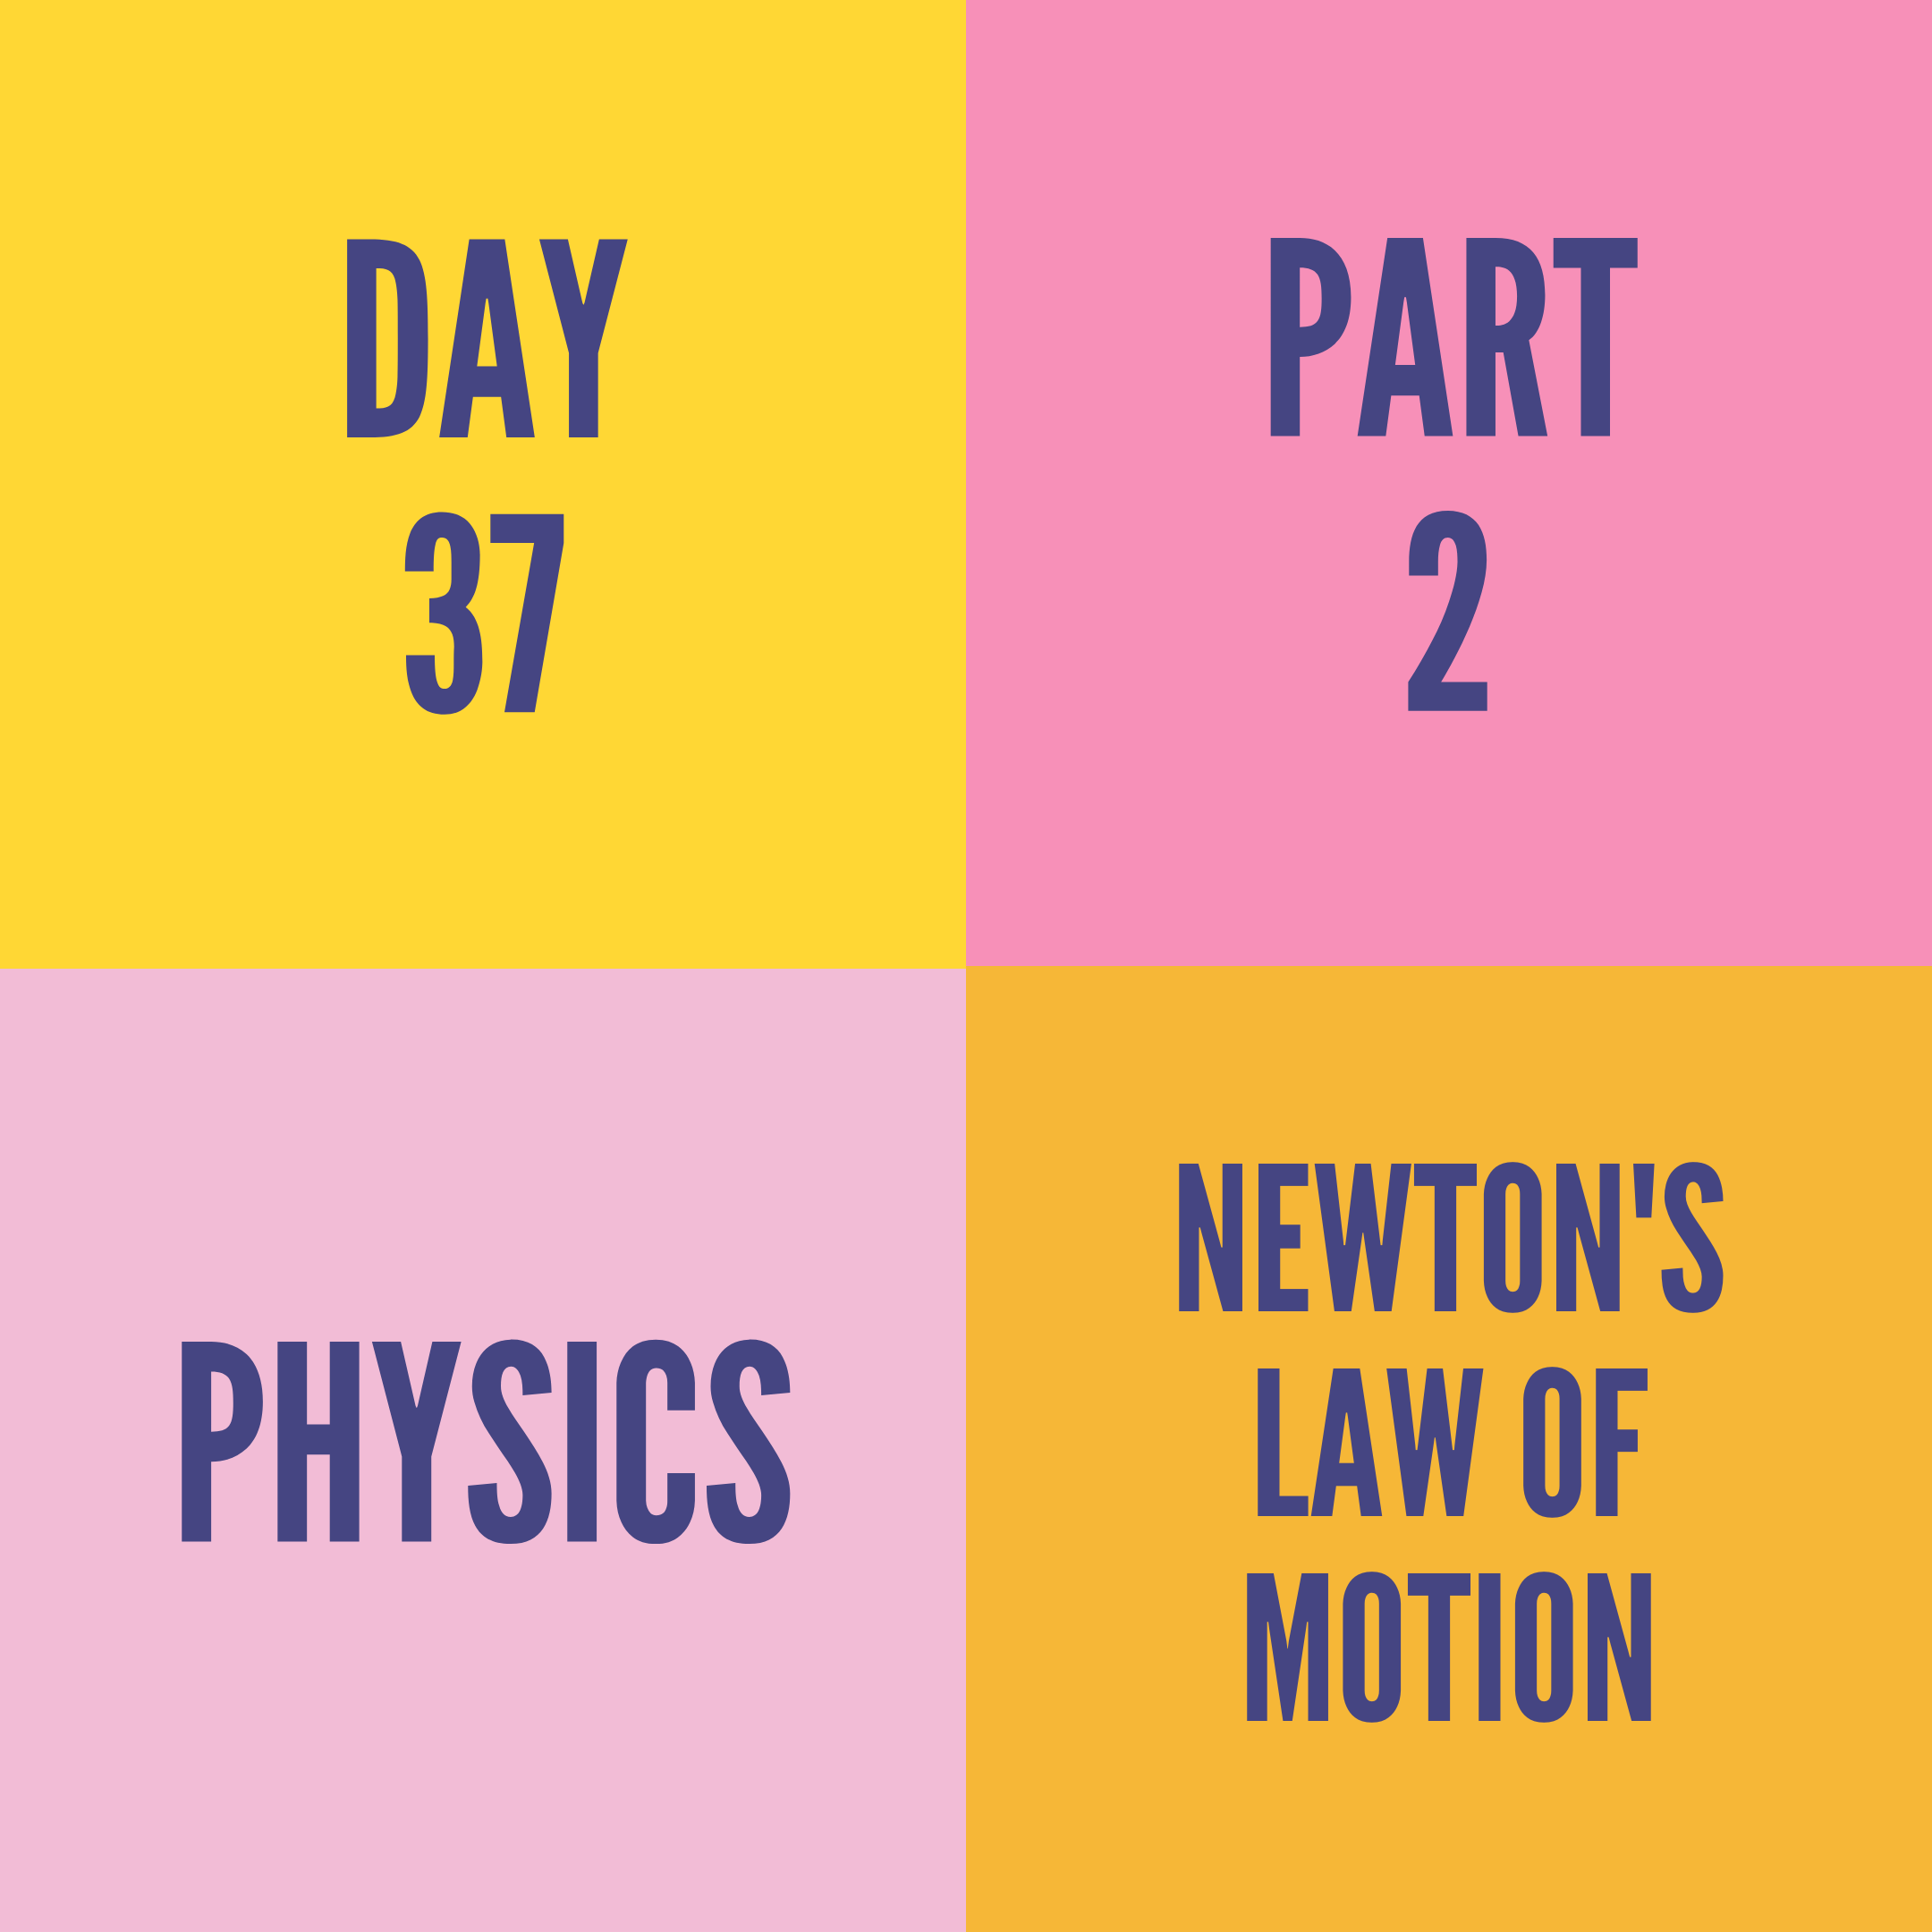 DAY-37 PART-2 NEWTON'S LAW OF MOTION